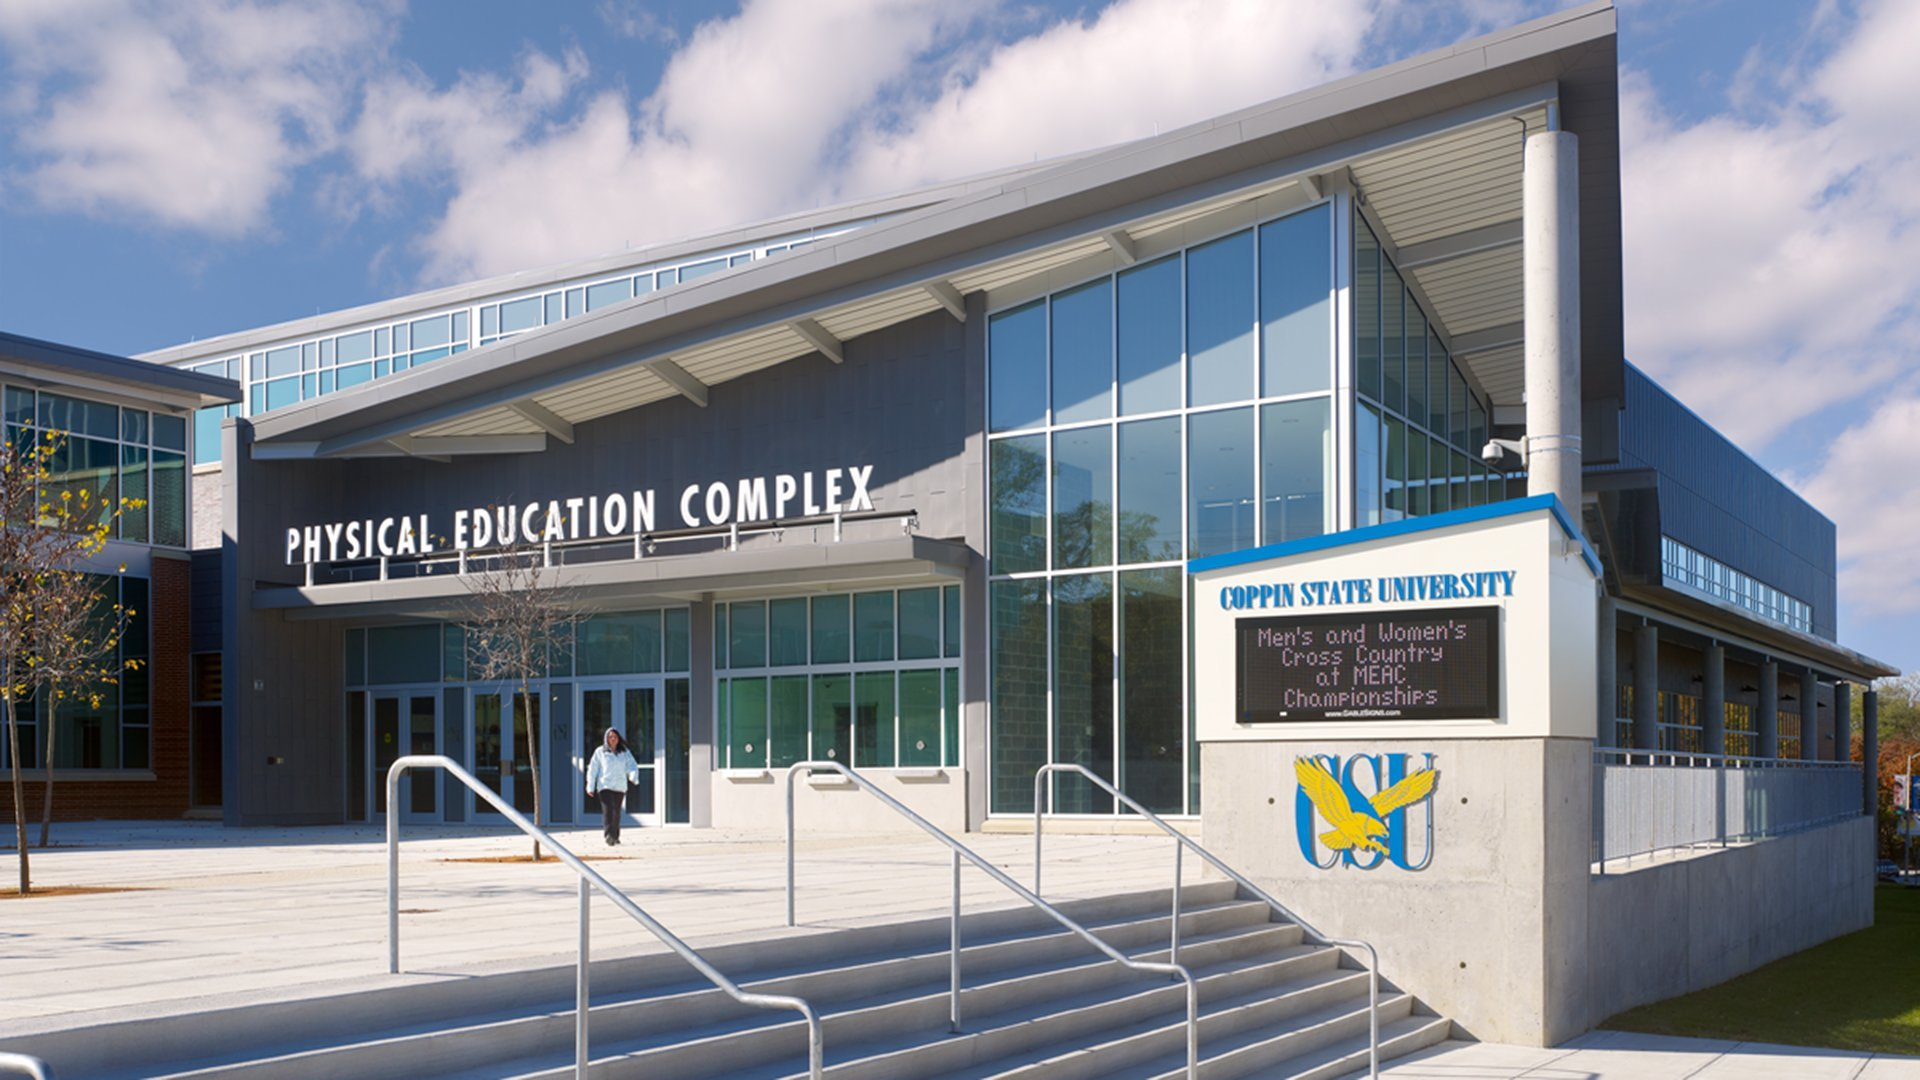 Coppin State University >> Hord Coplan Macht Physical Education Center Coppin State